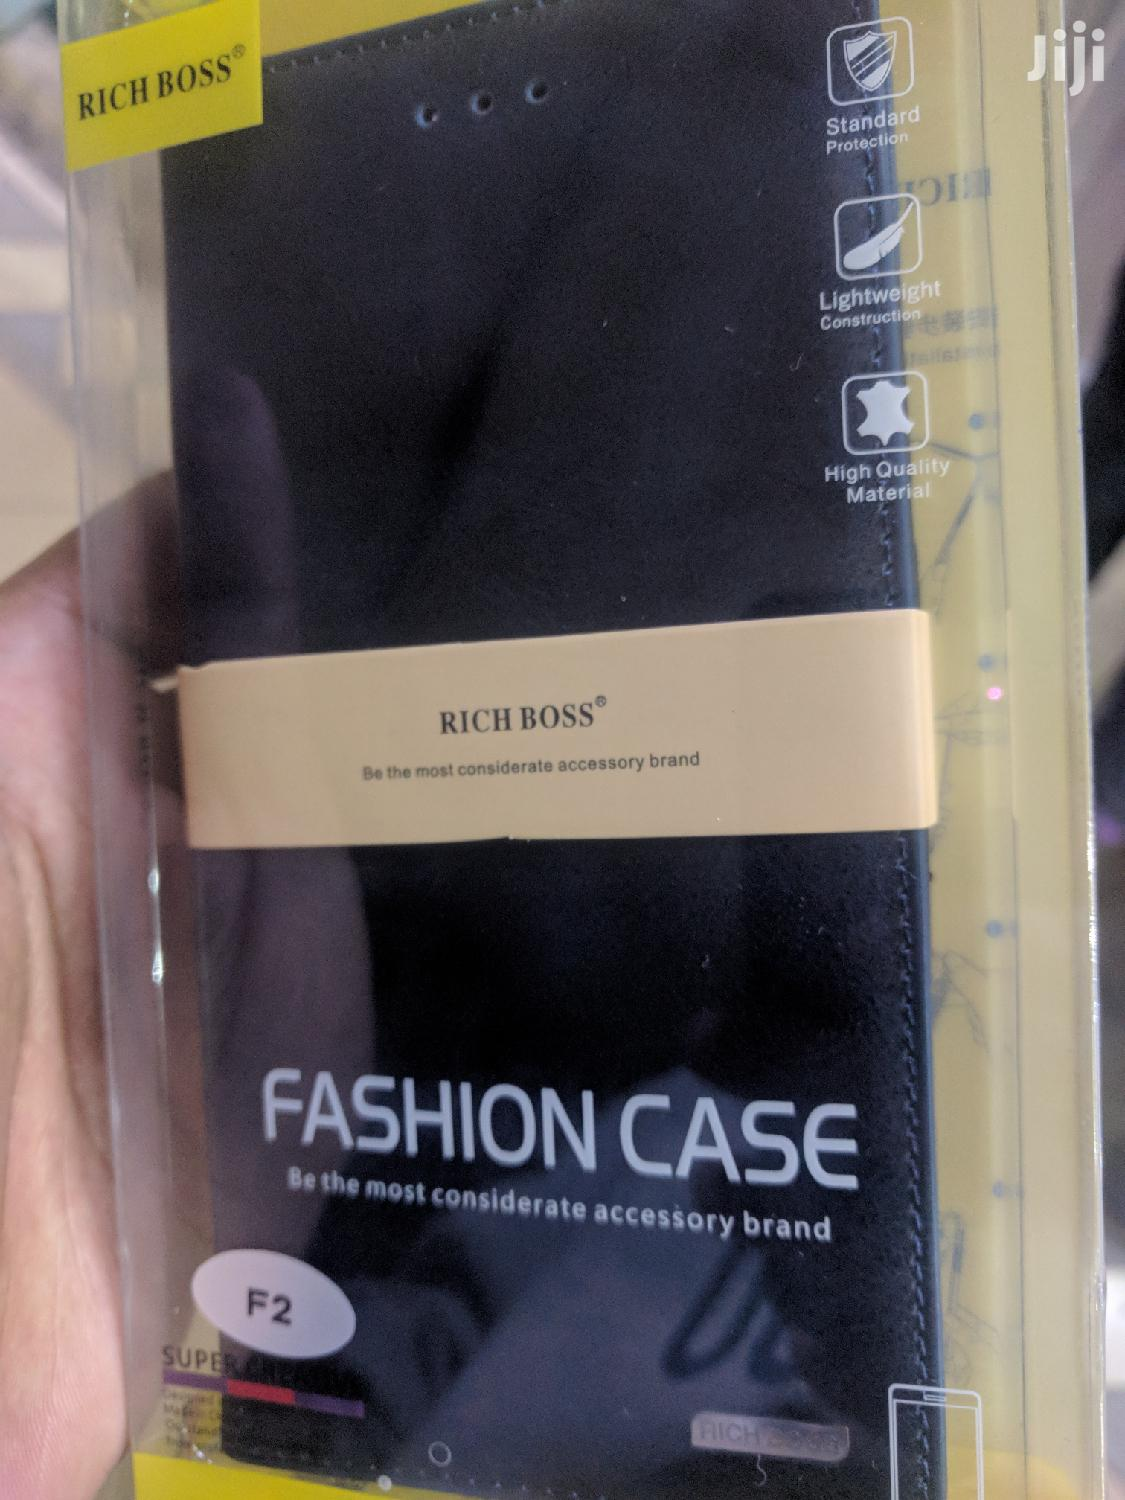 Rich Boss Flip Cases For All Phones   Accessories for Mobile Phones & Tablets for sale in Nairobi Central, Nairobi, Kenya